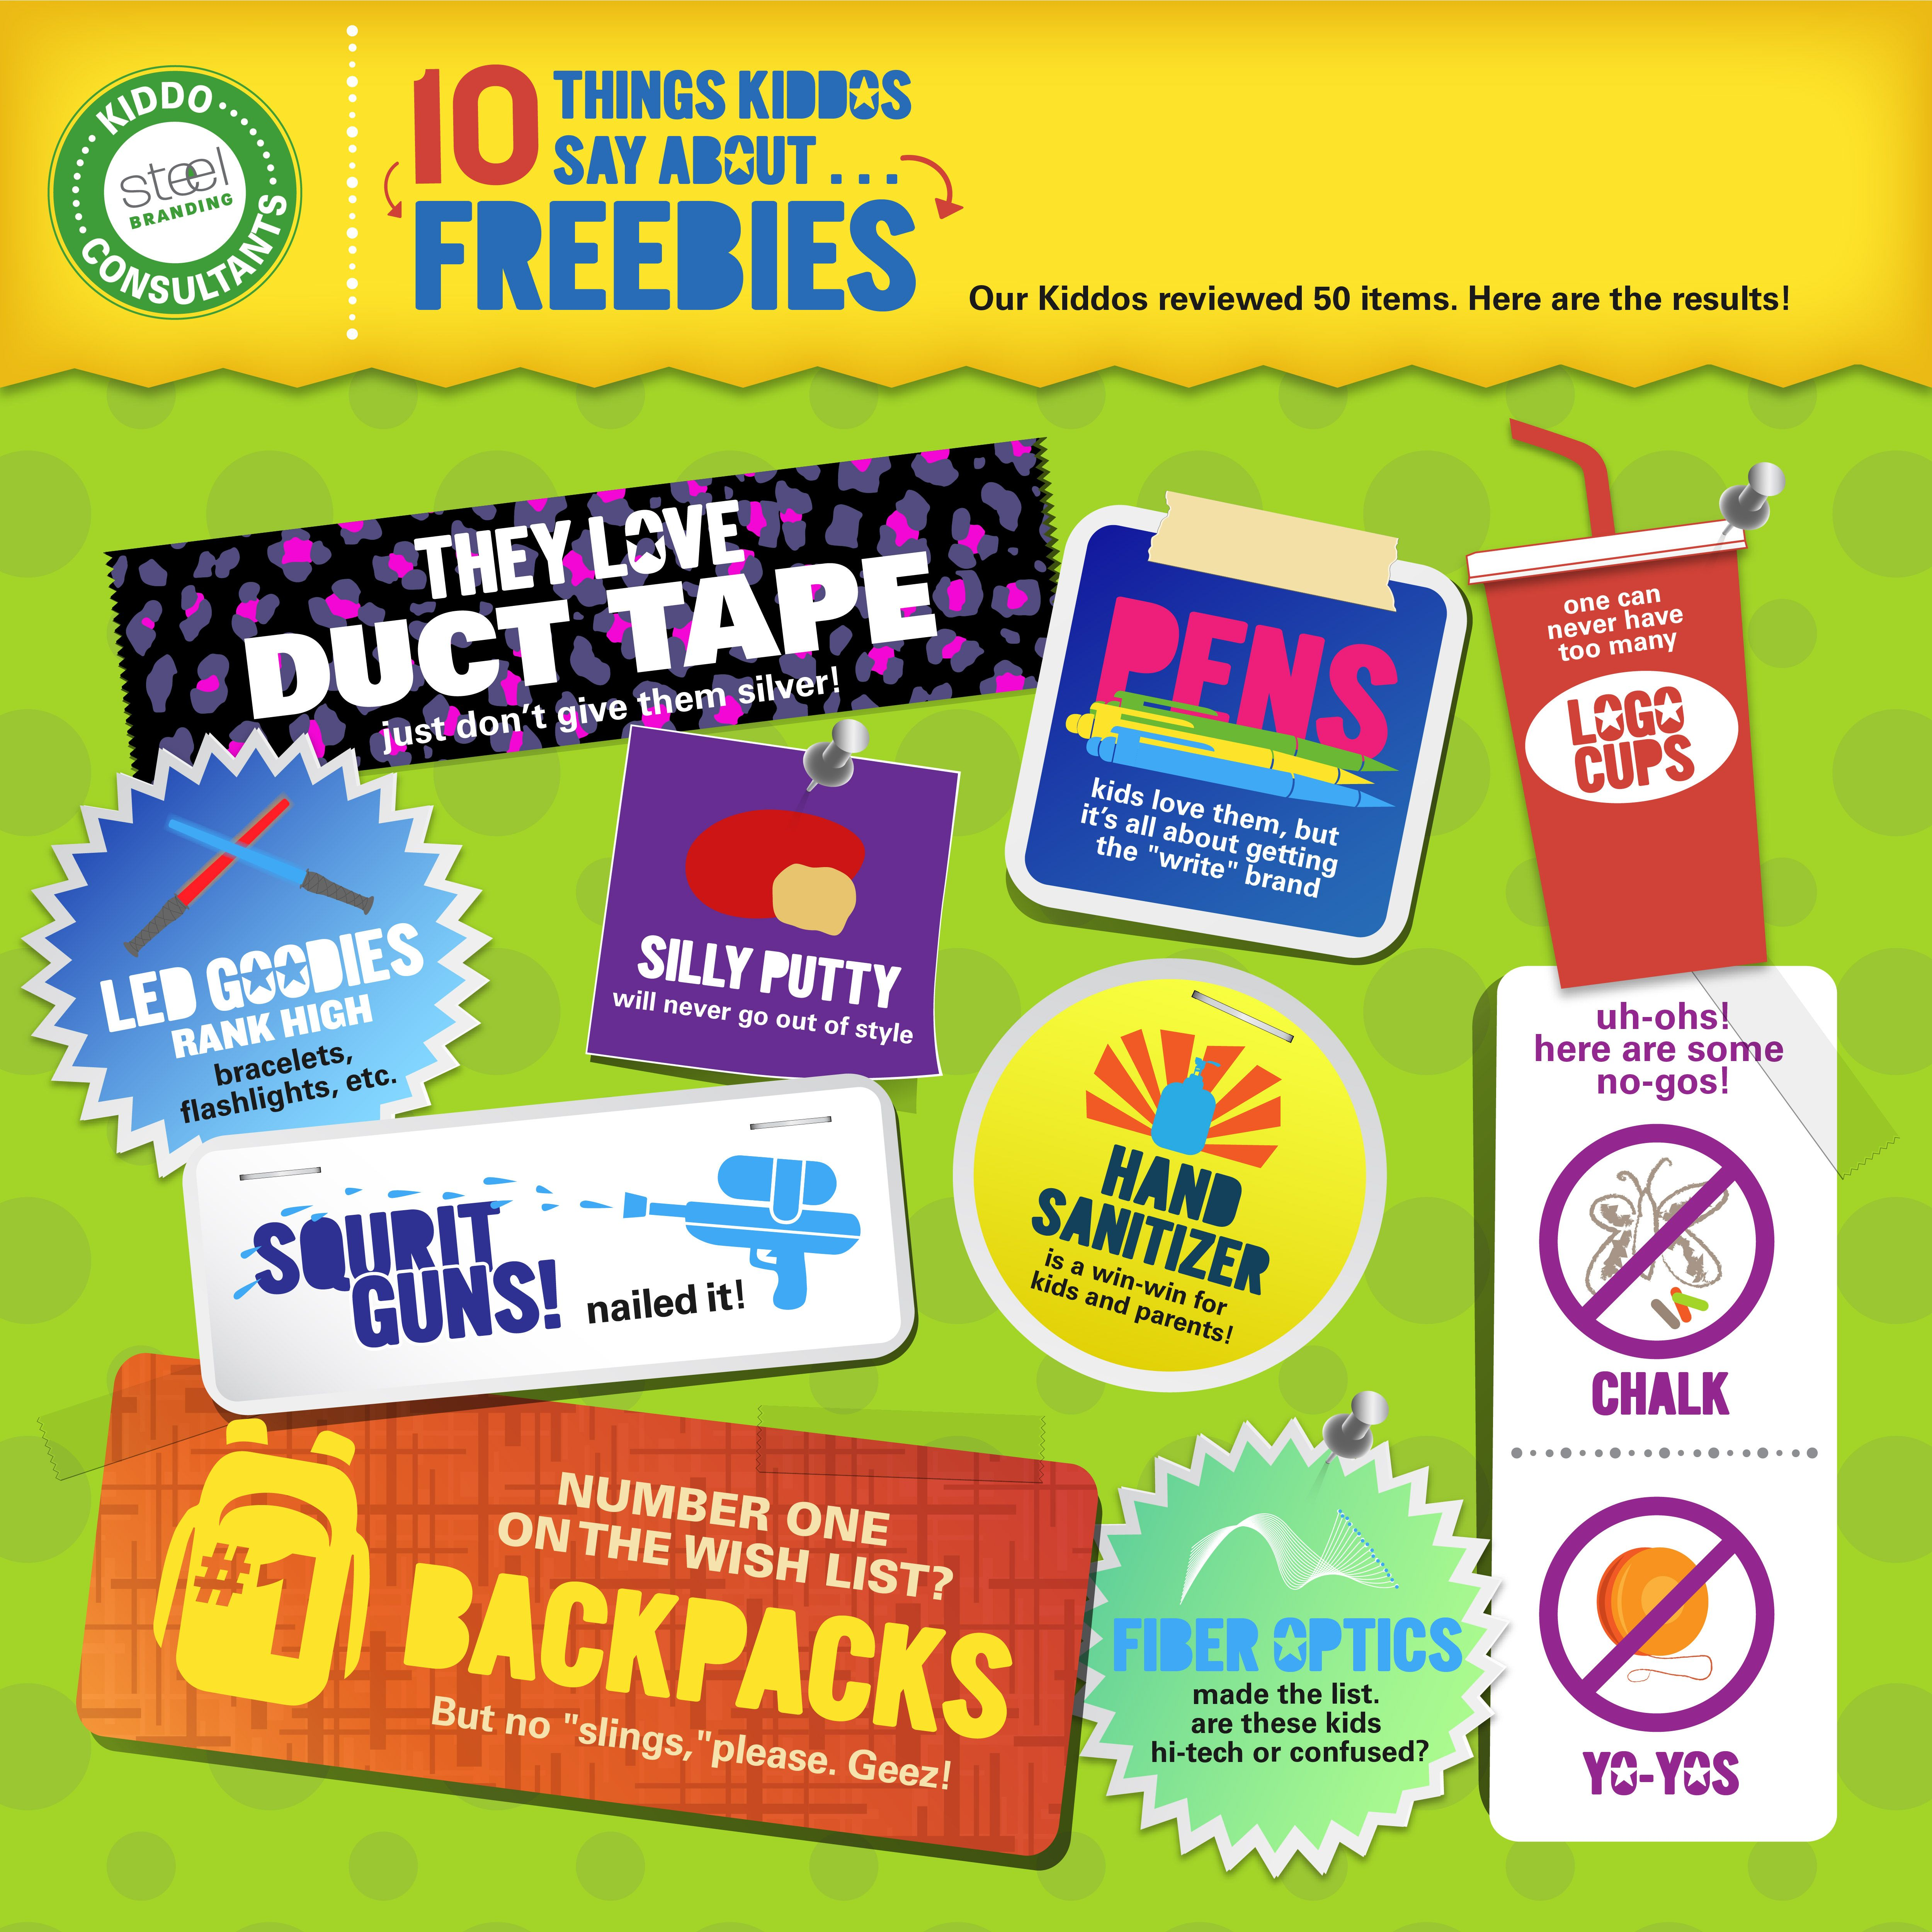 10 Things Kiddos Say About Freebies